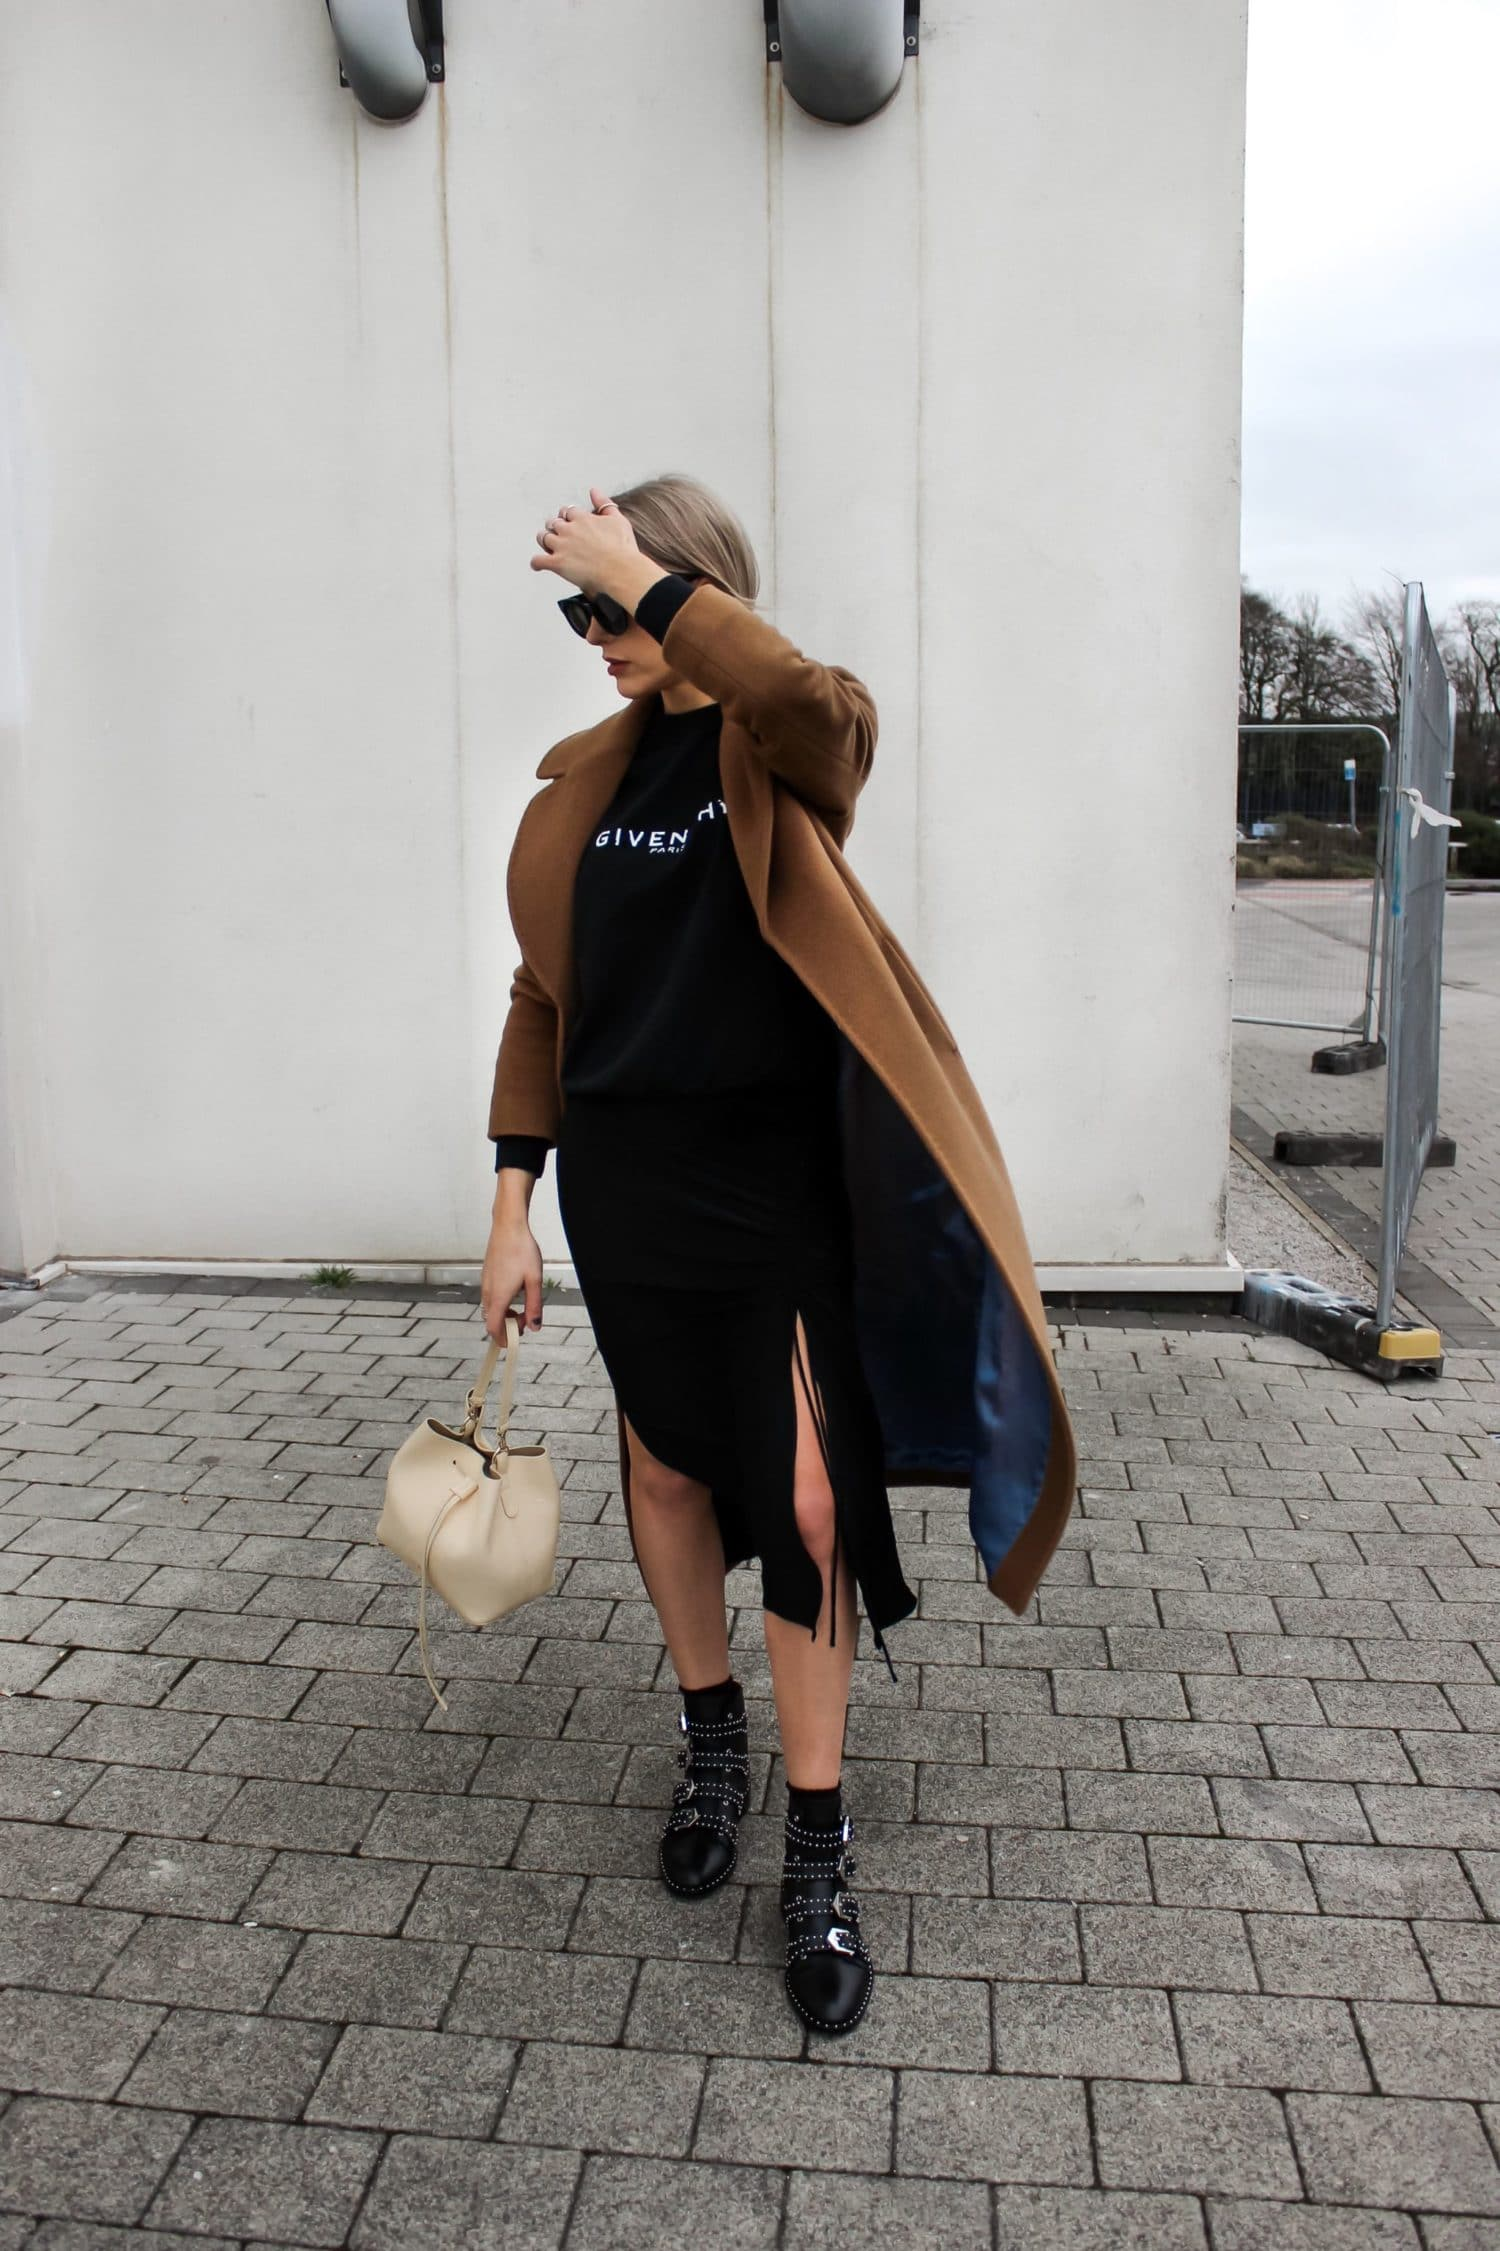 4a7099e5f2e5 Givenchy street style with Farfetch | Lurchhoundloves Style Blog ...